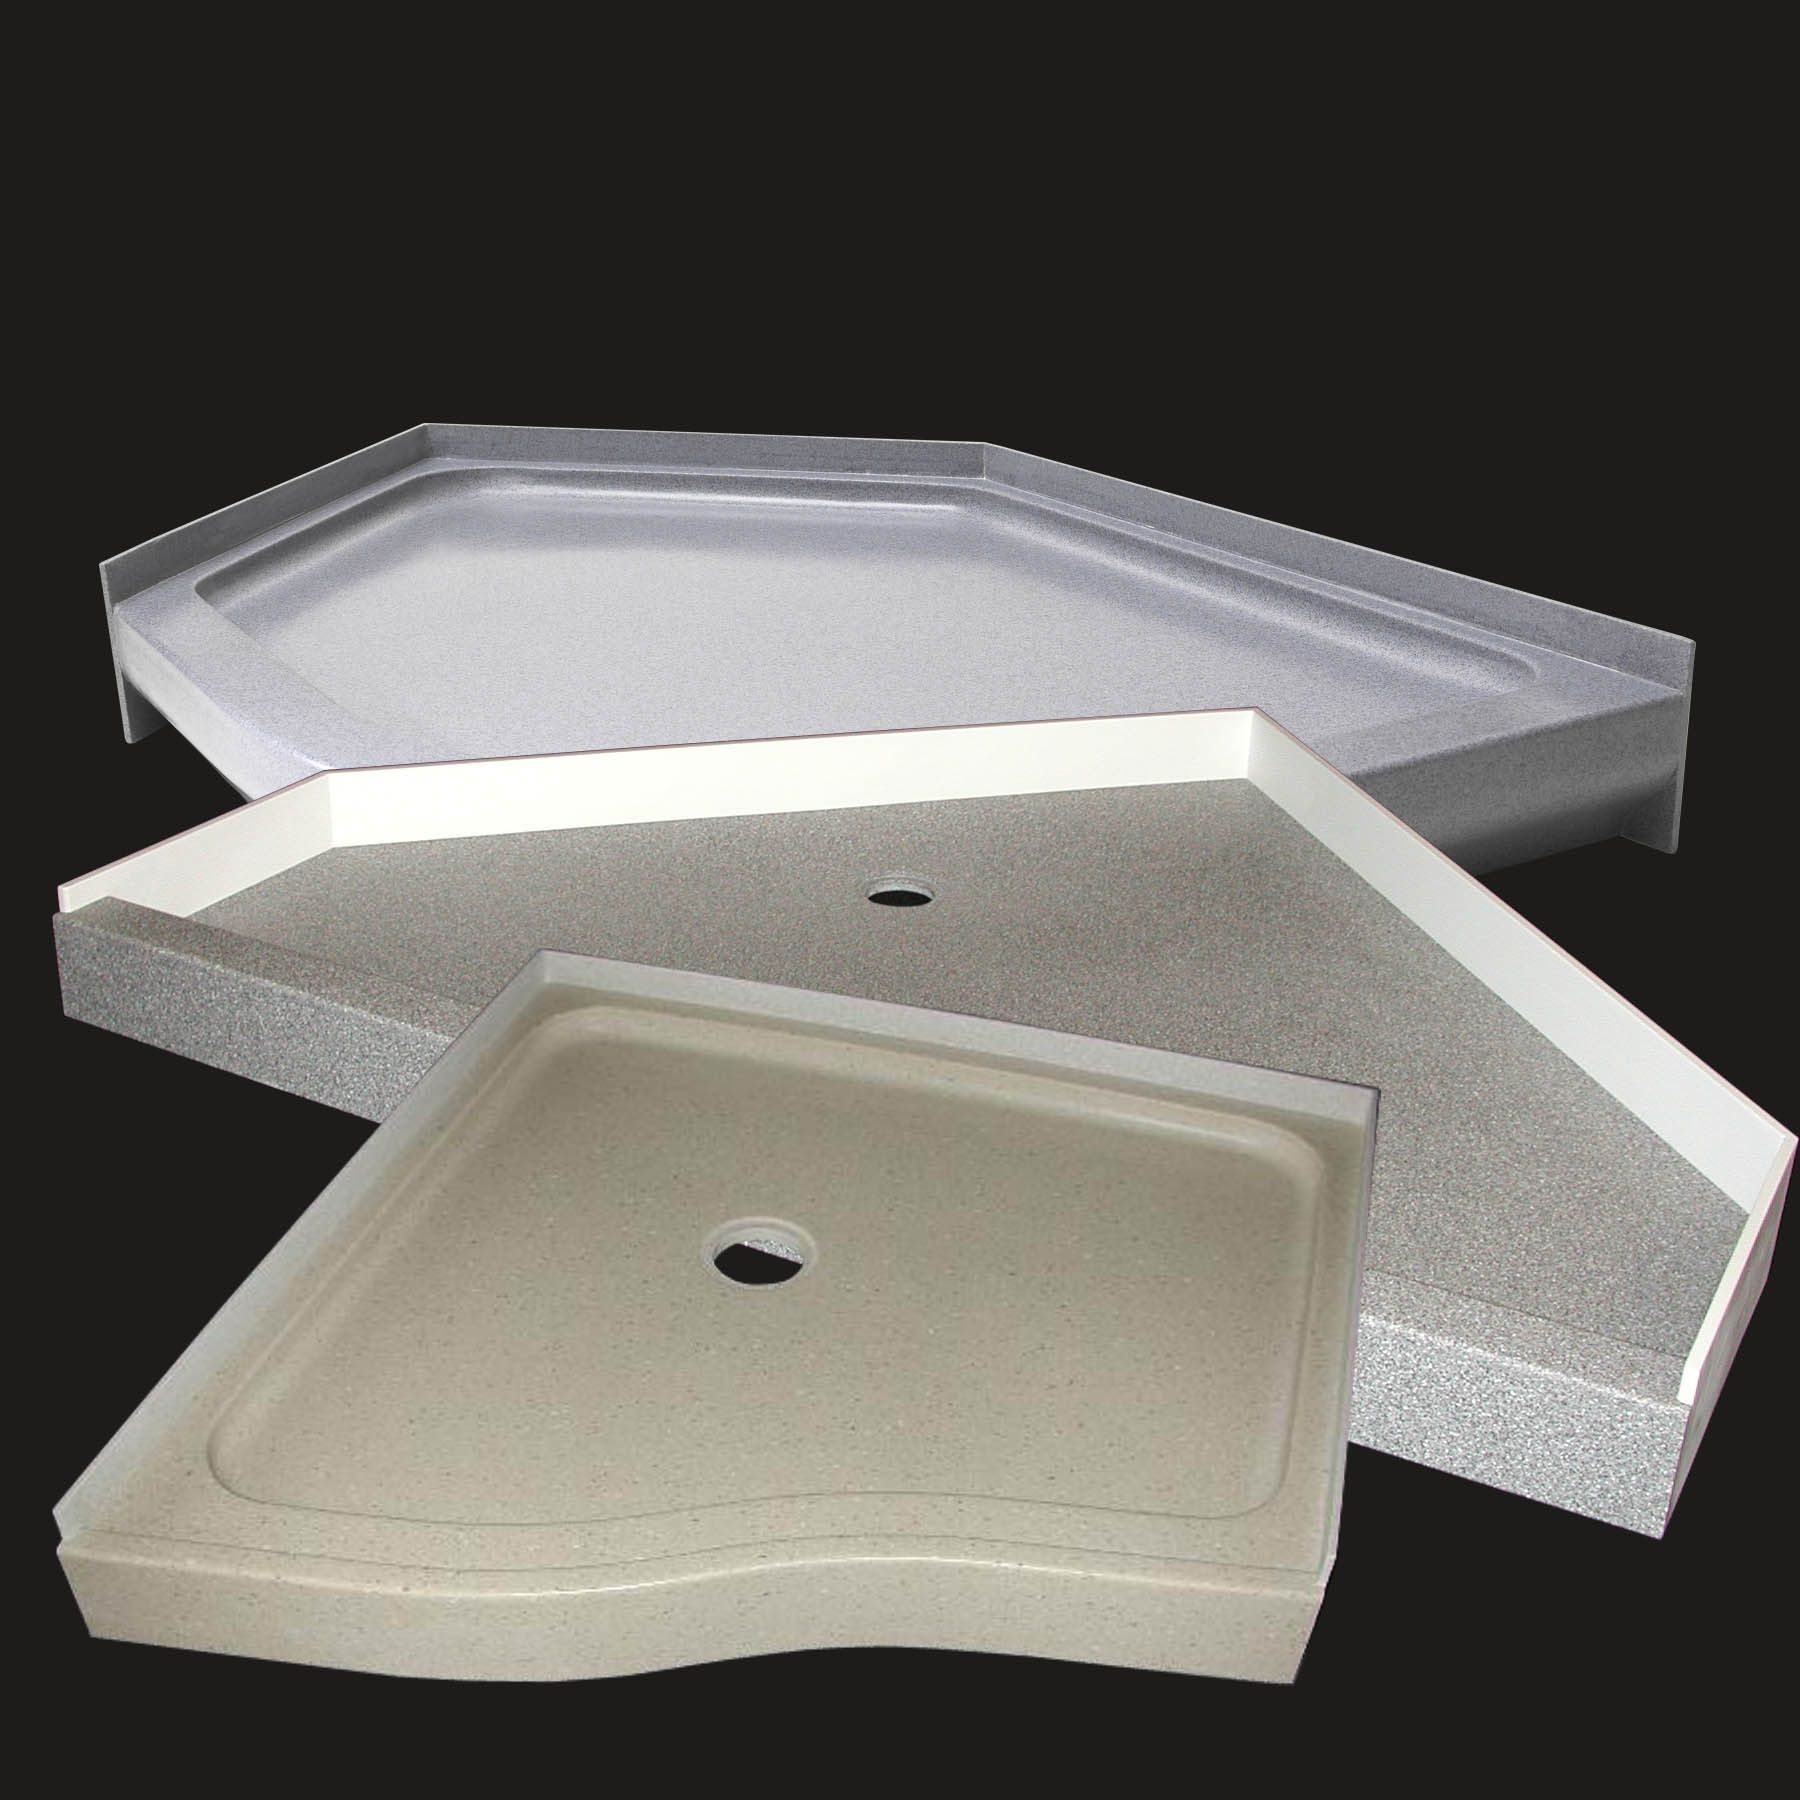 Our Shower Pans Are 100 Customizable With A Custom Drain Location